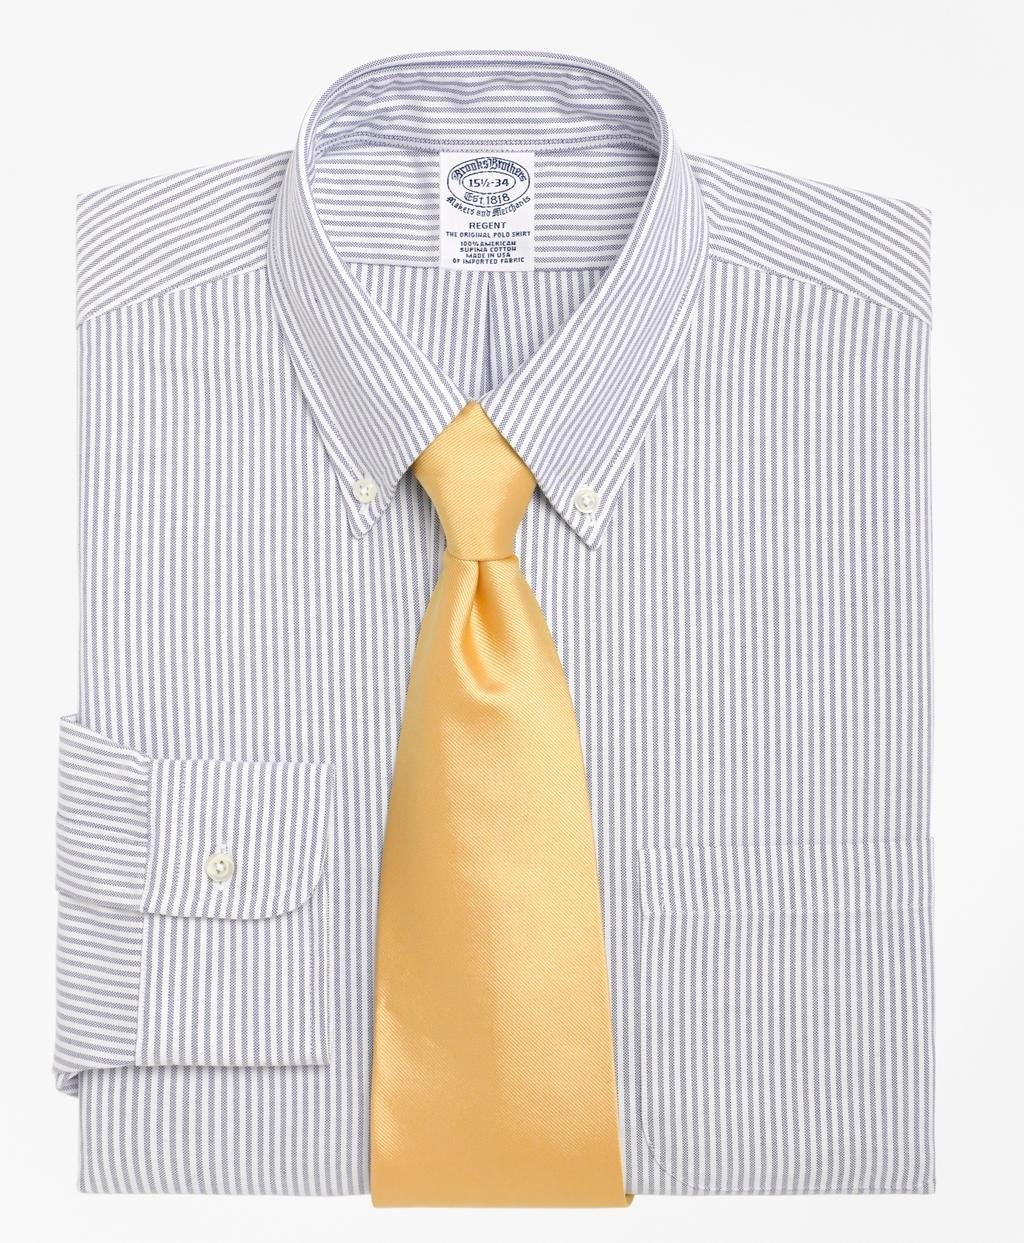 Lyst brooks brothers traditional fit stripe dress shirt for Brooks brothers dress shirt fit guide